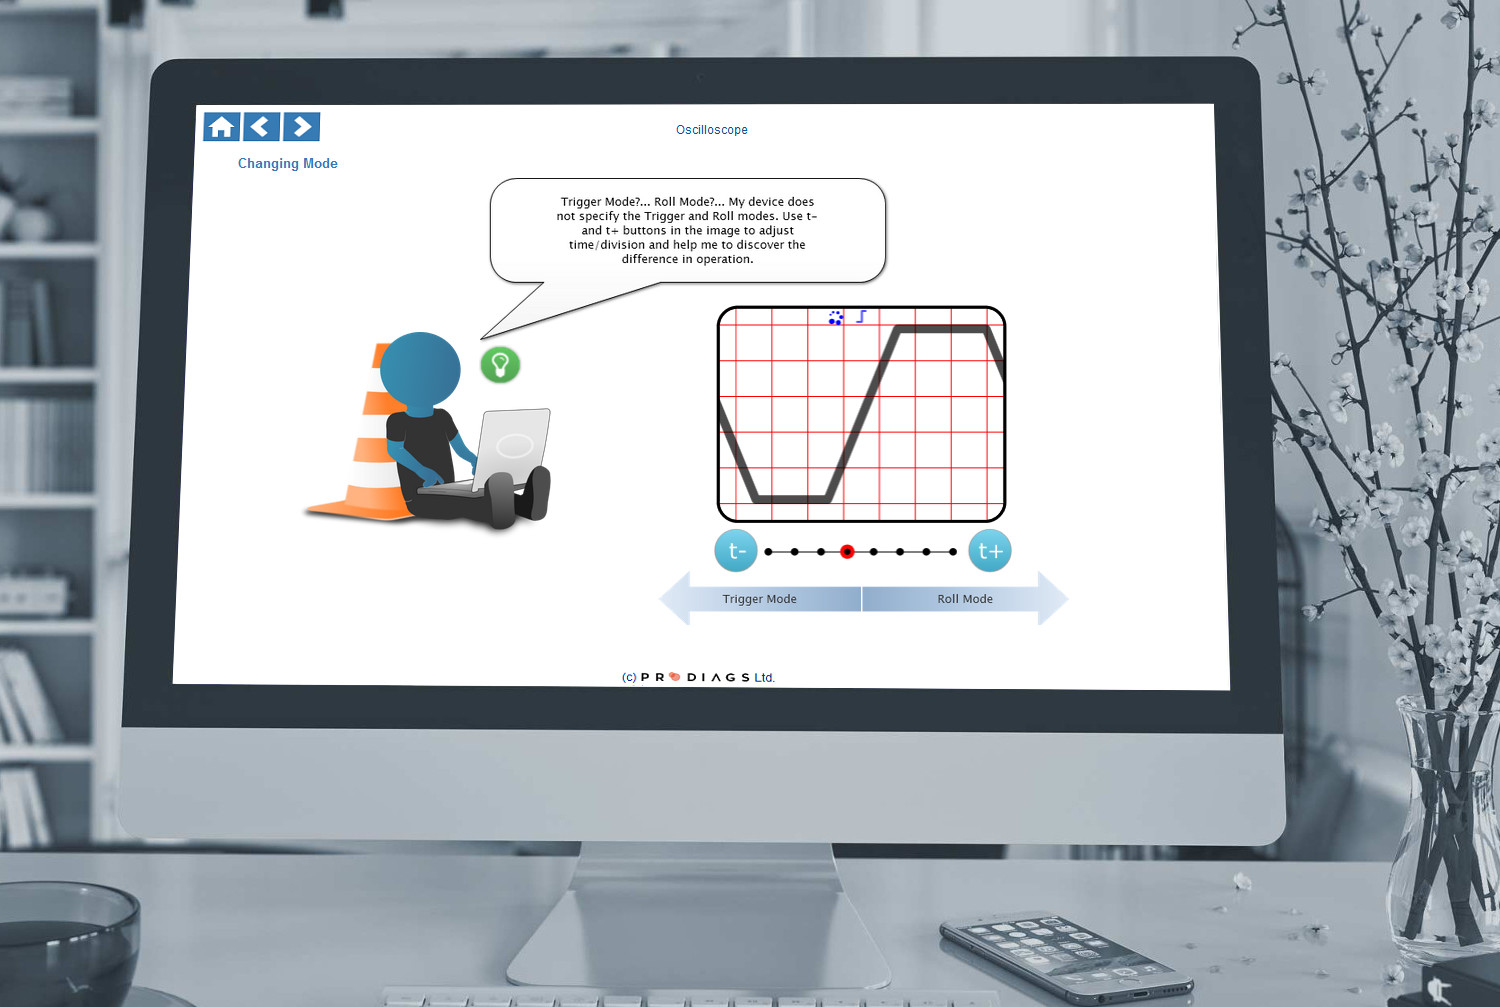 With this online training module, learn how to use the oscilloscope's trigger and roll modes as well as adjusting the time/division of the oscilloscope.